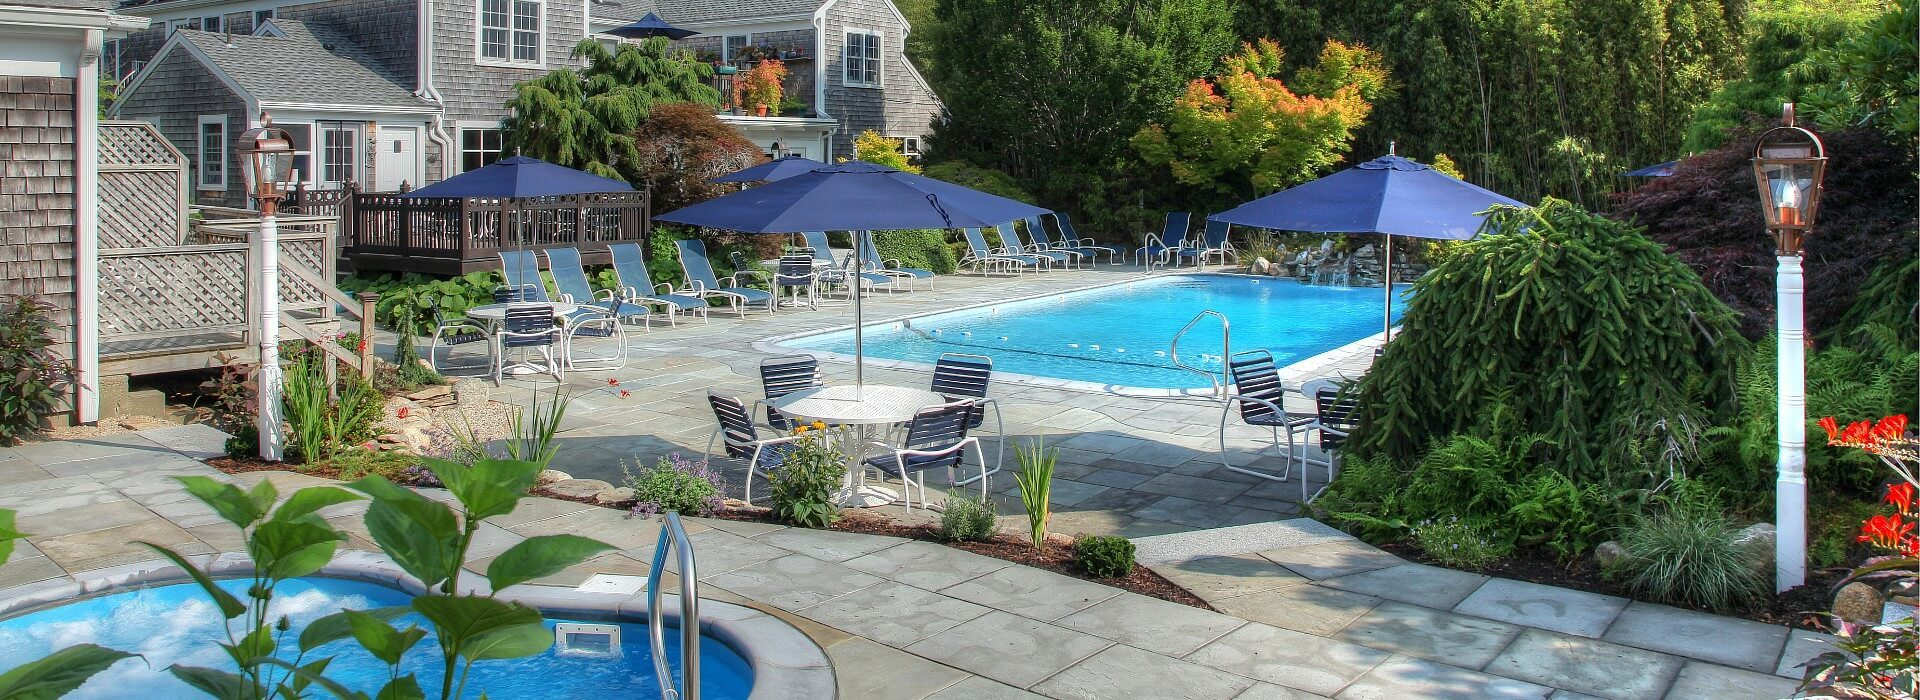 Expansive outdoor patio area with large pool lined with chairs, hot tub, and patio tables with blue umbrellas